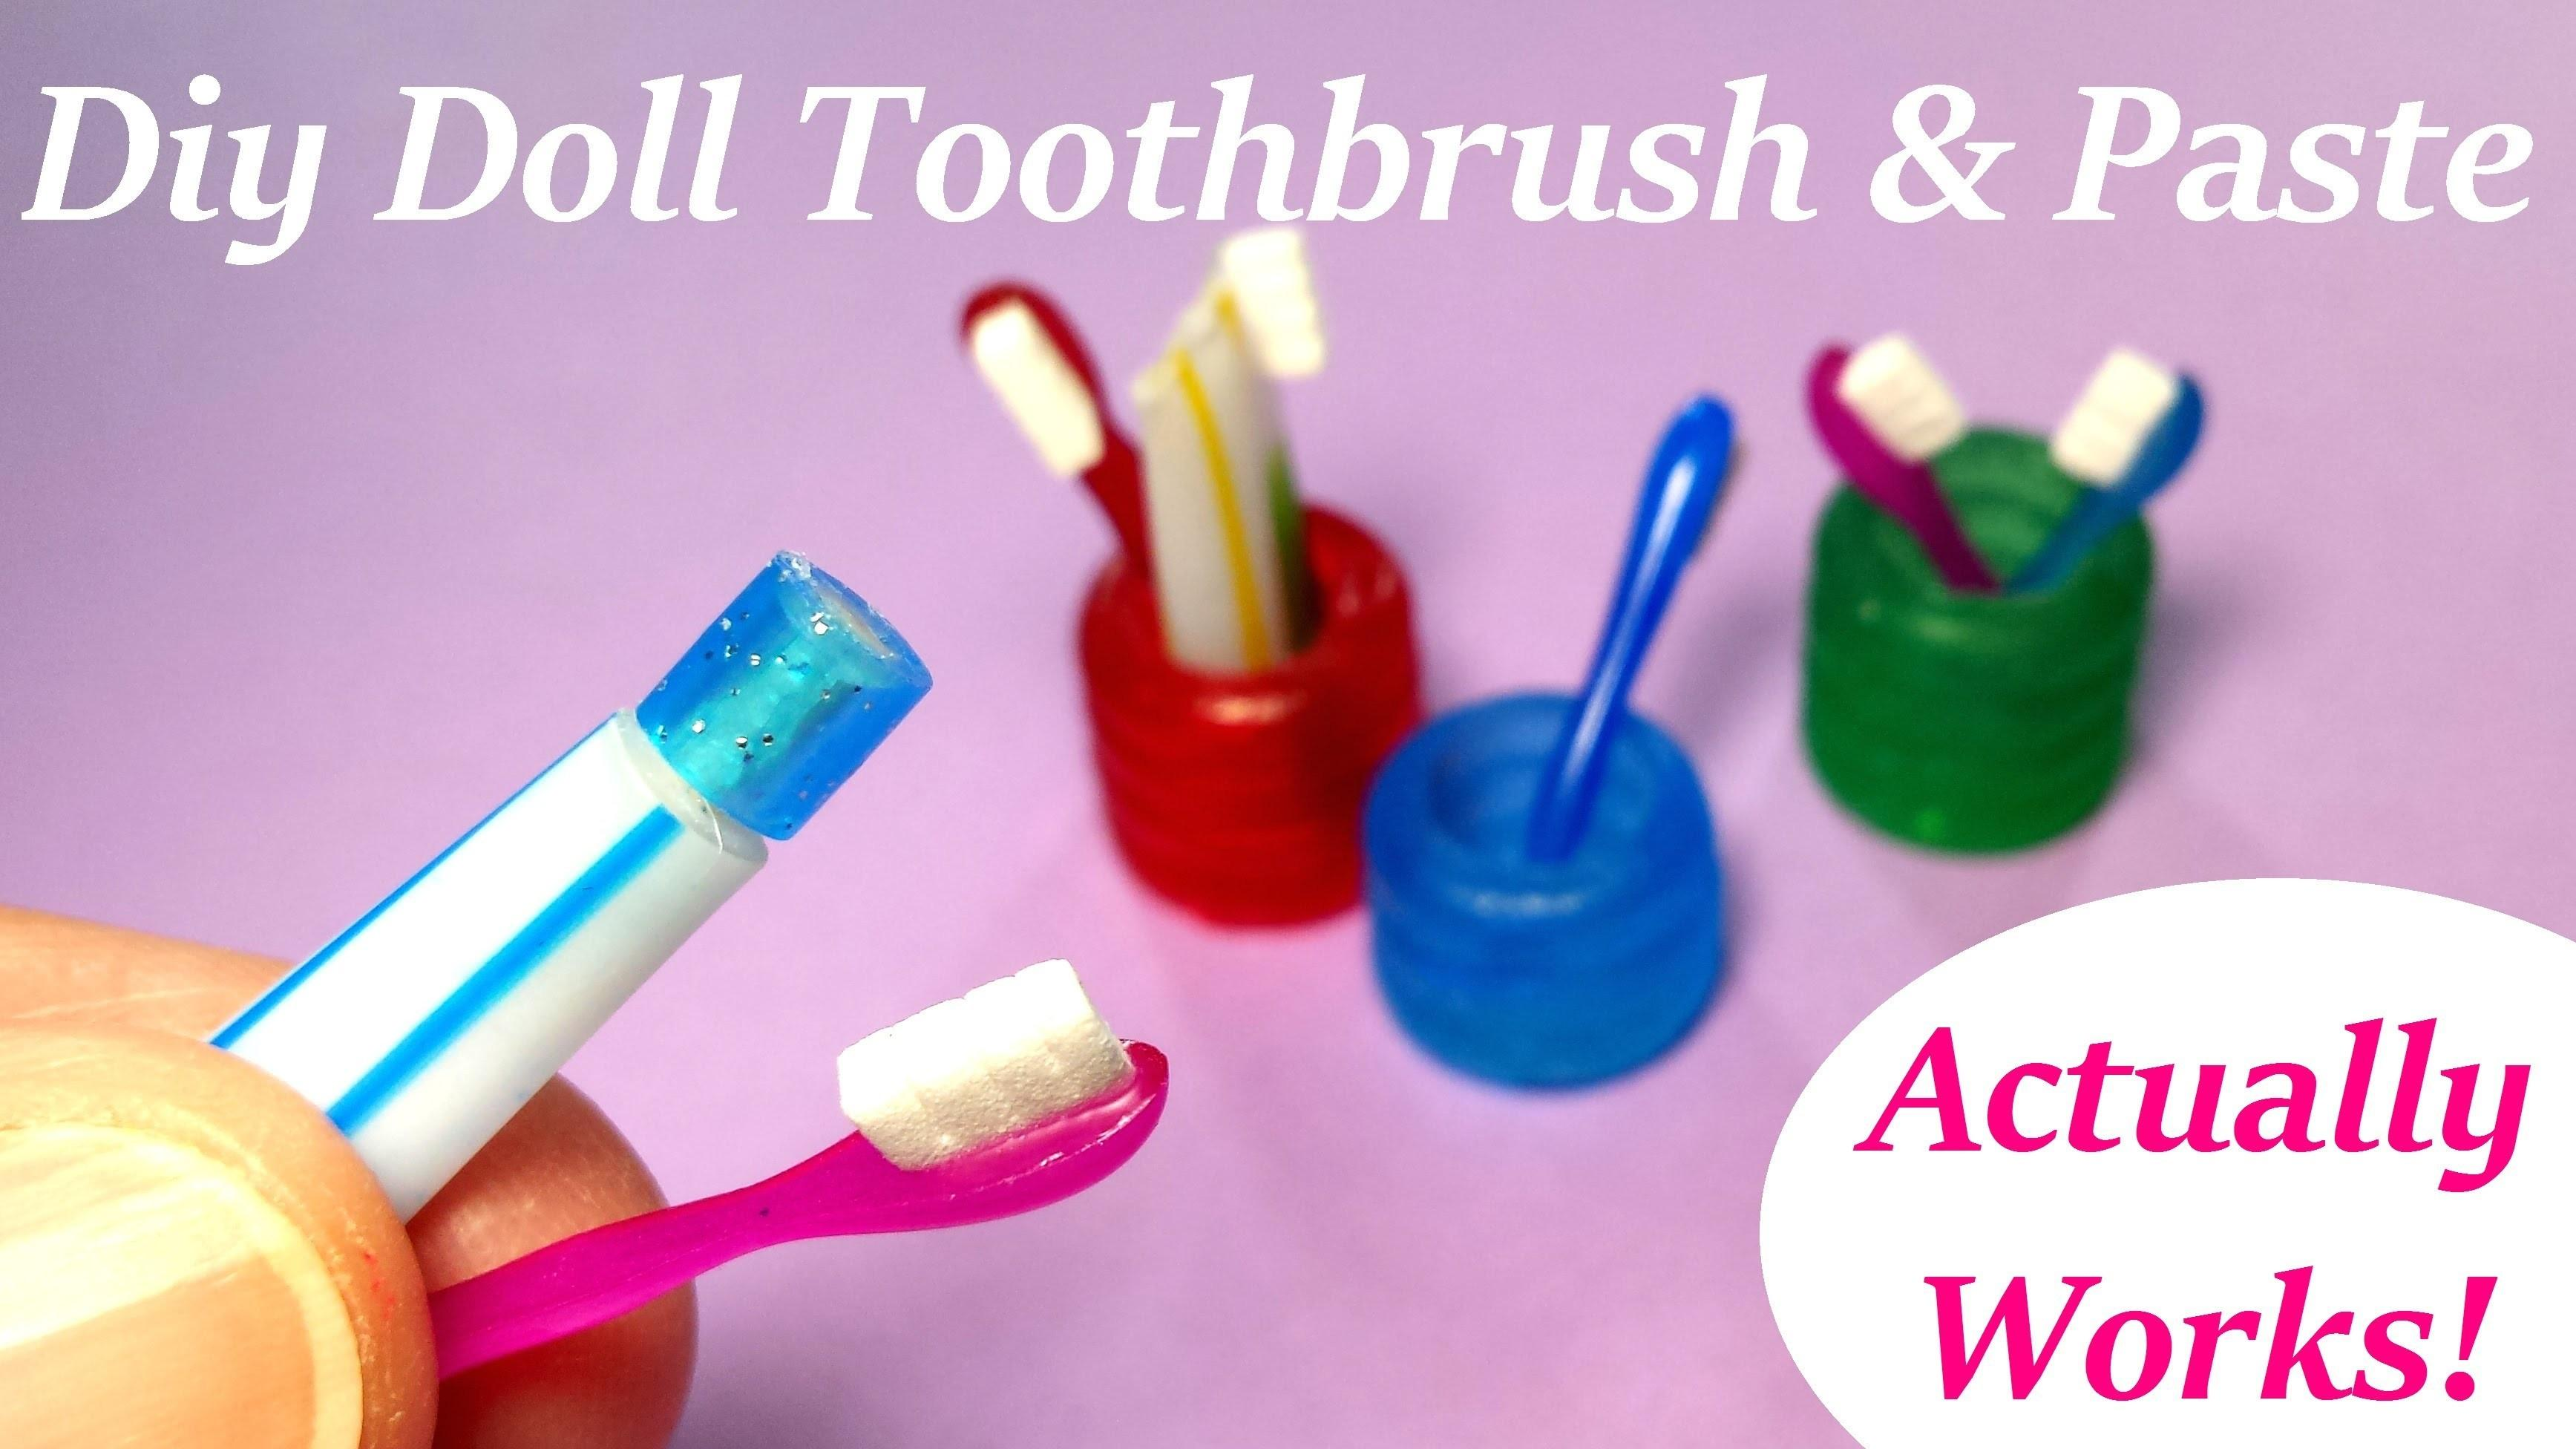 Diy Miniature Doll Toothbrush Holder Working